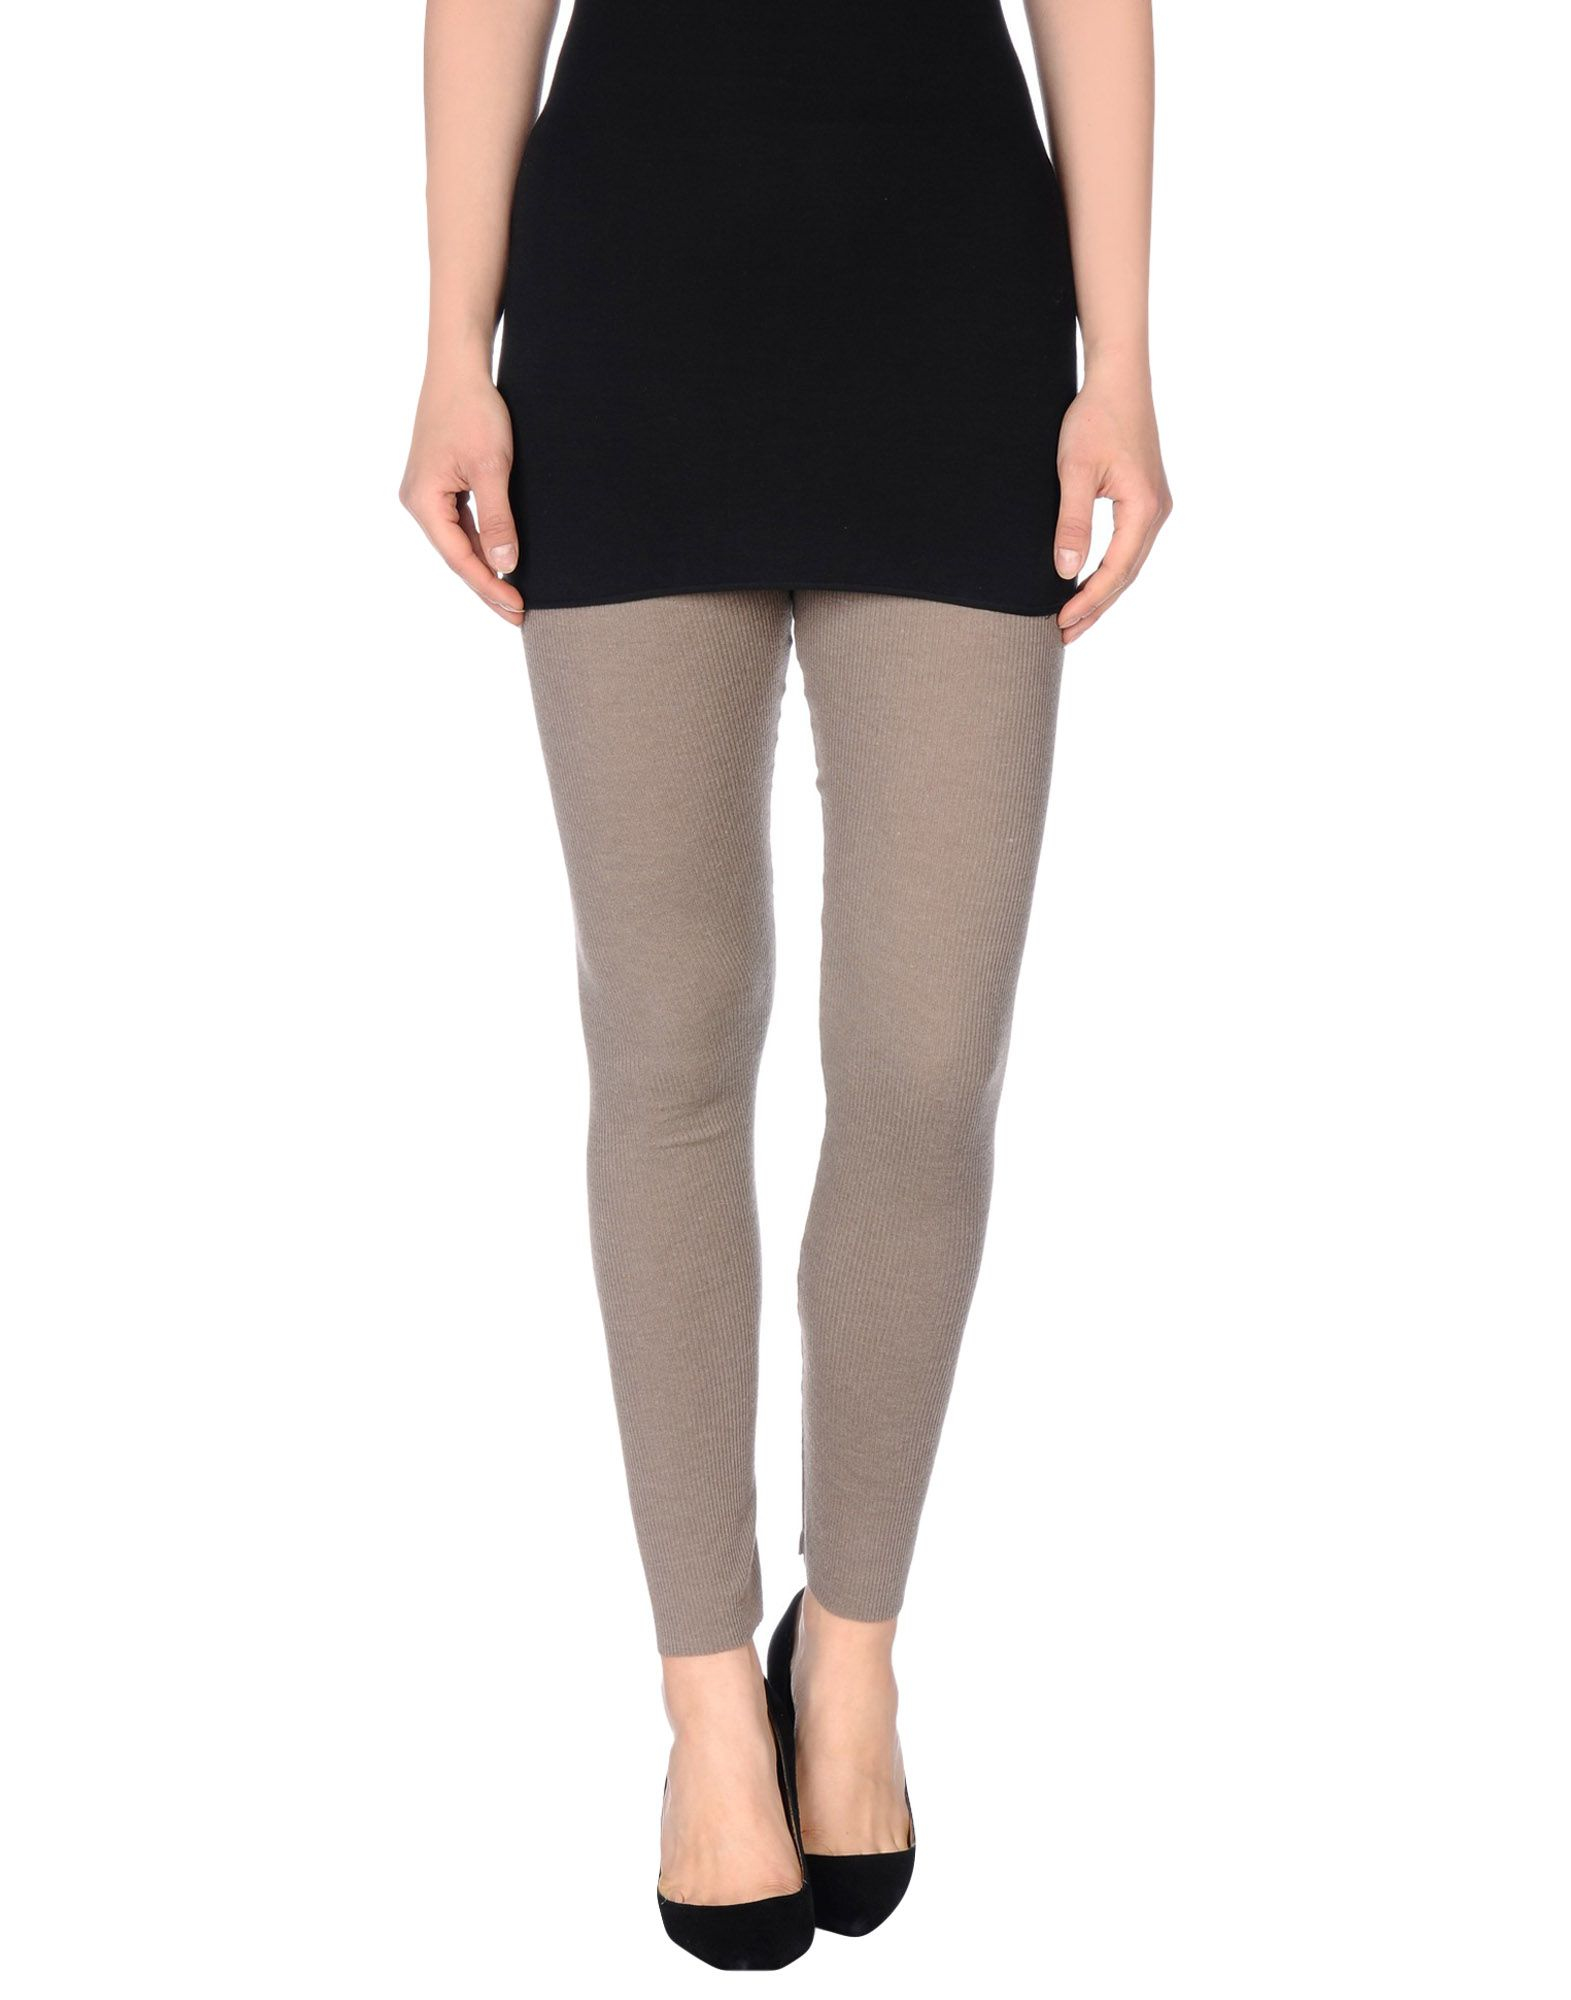 Alysi Leggings in Natural (Khaki)